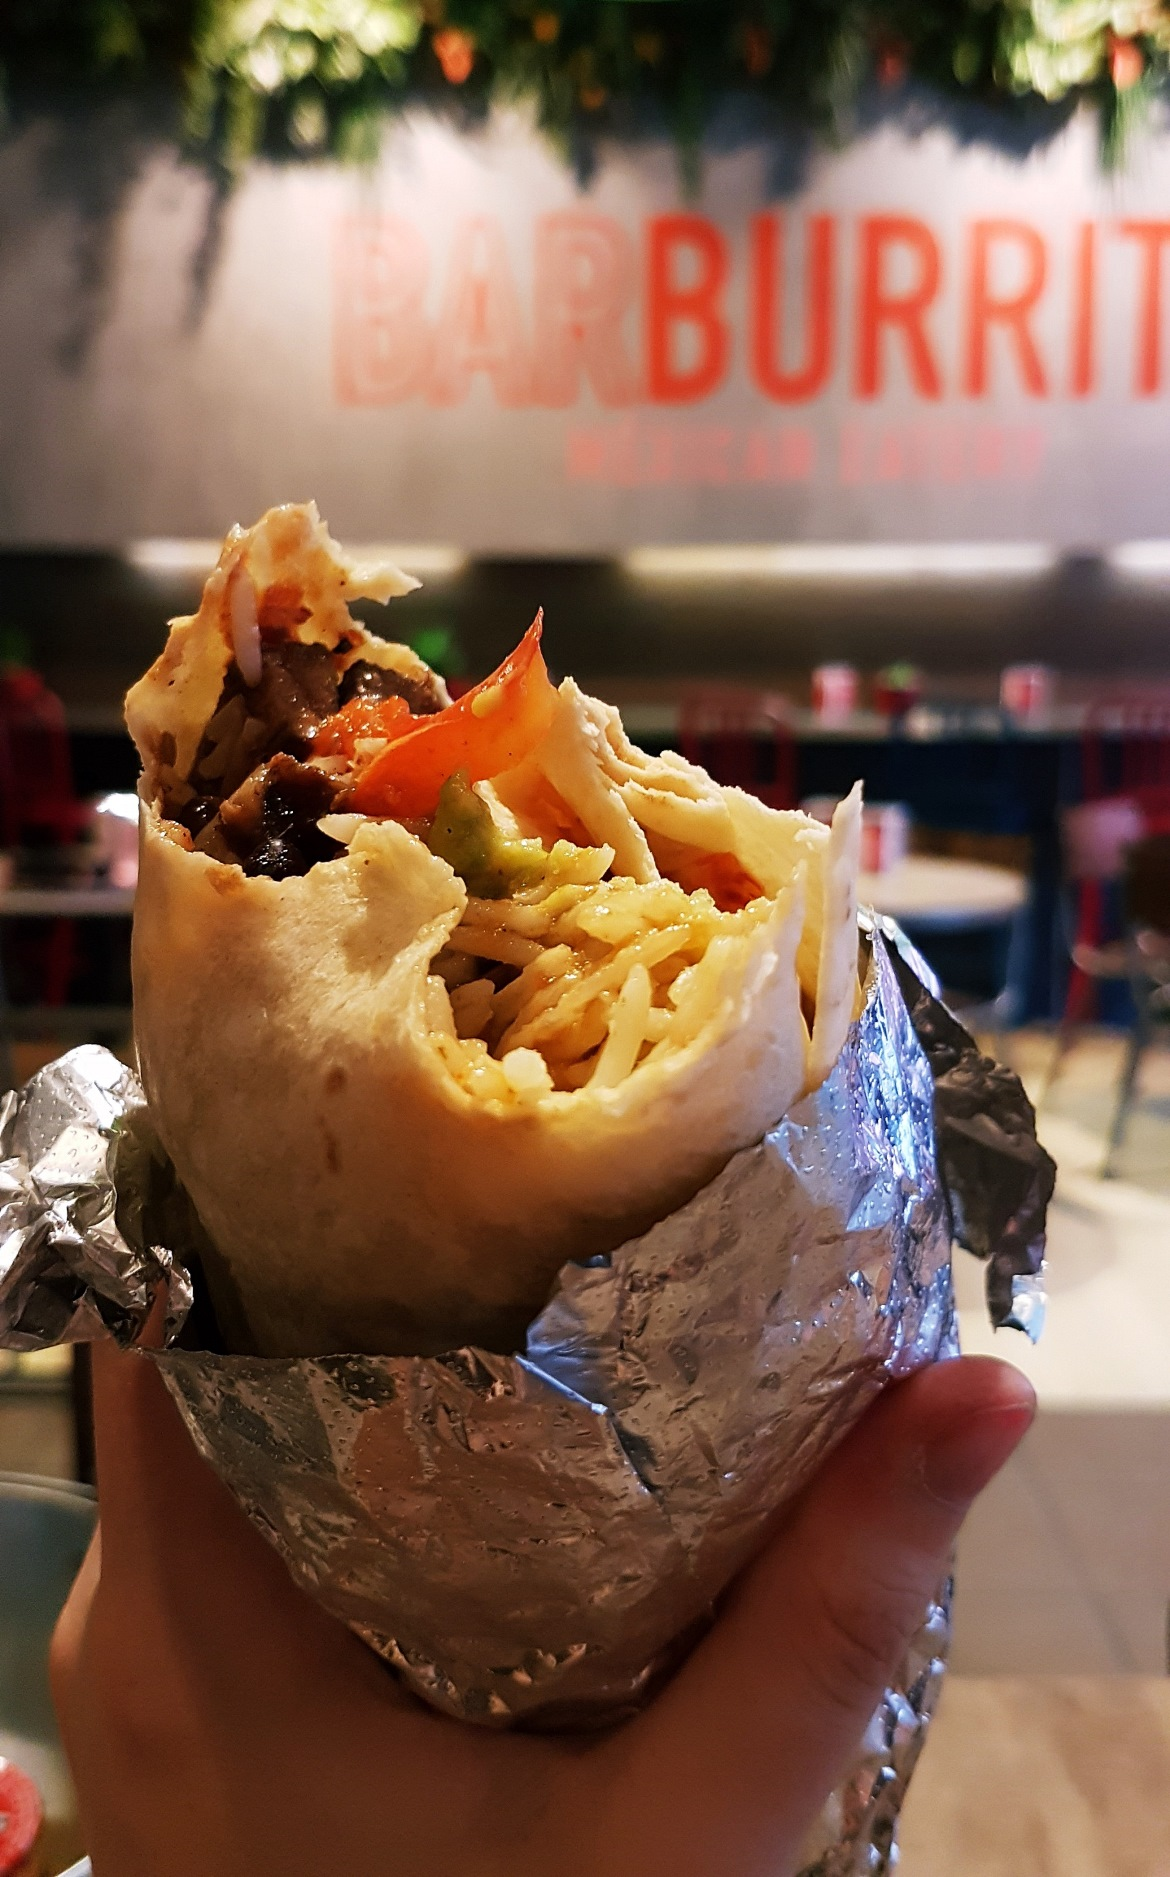 Half eaten burrito - Burrito Masterclass with Barburrito, review by BeckyBecky Blogs